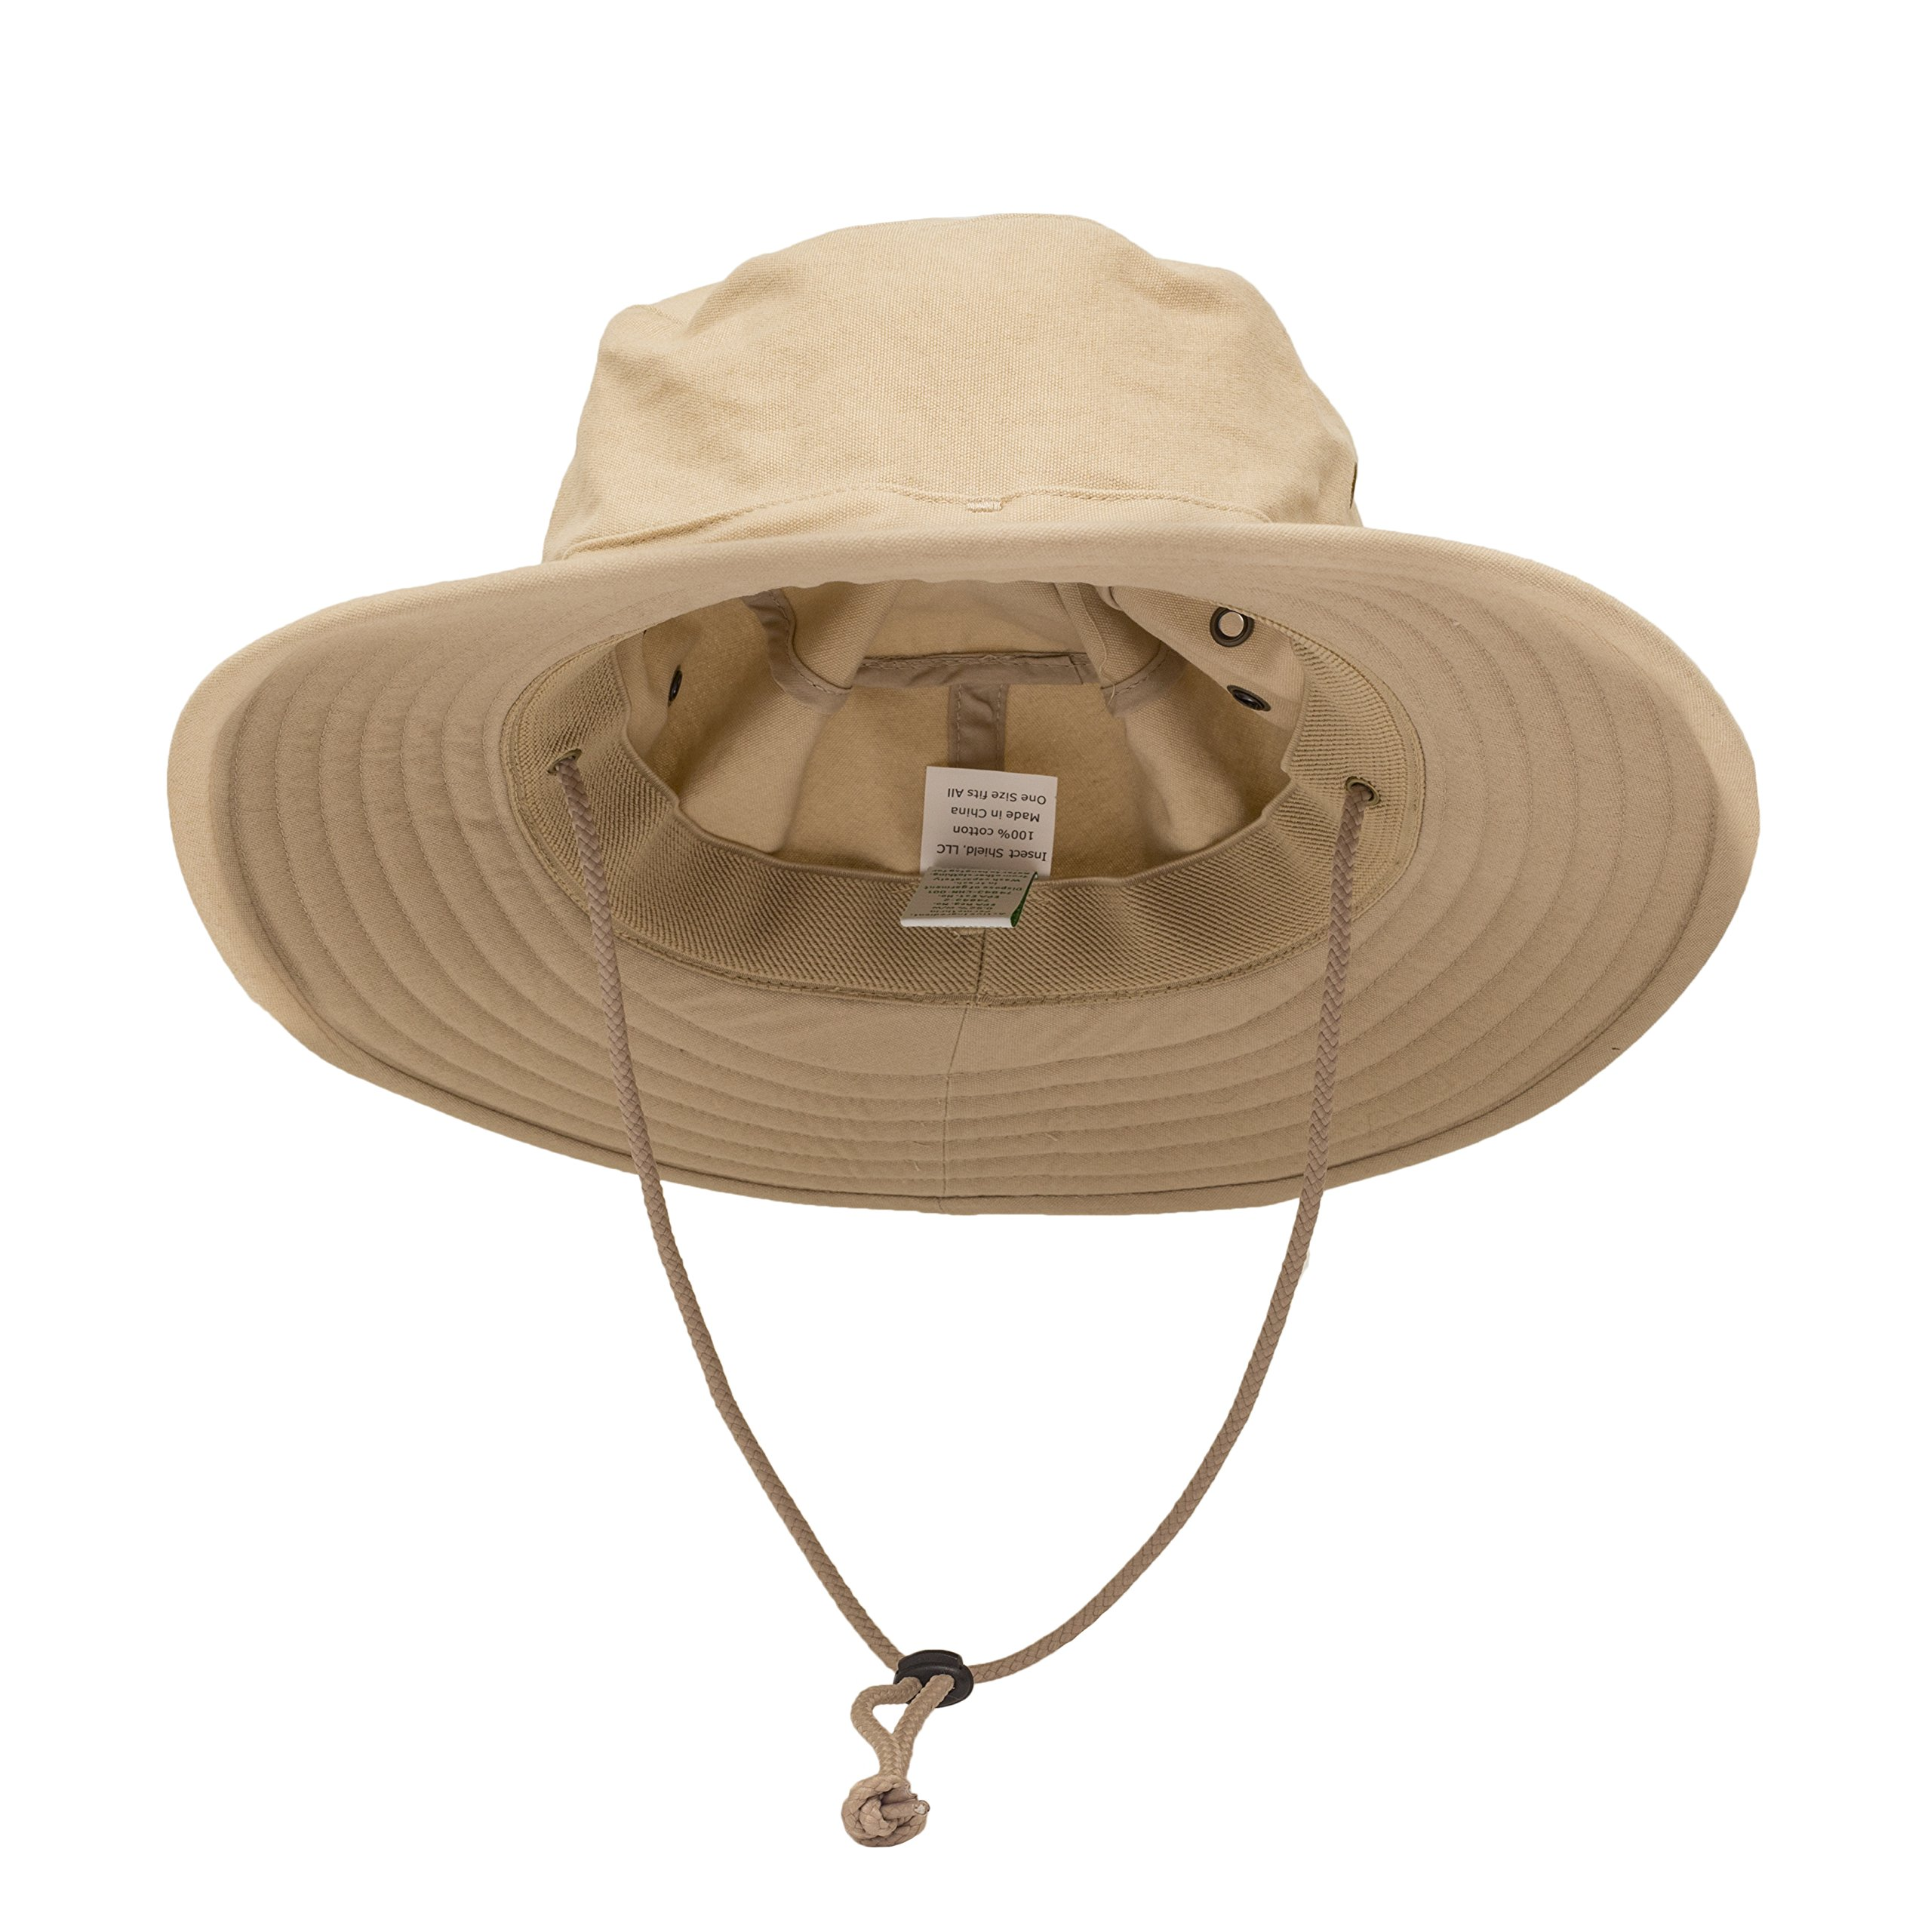 Insect Shield Brim Hat, Sand, One Size Adjustable by Insect Shield